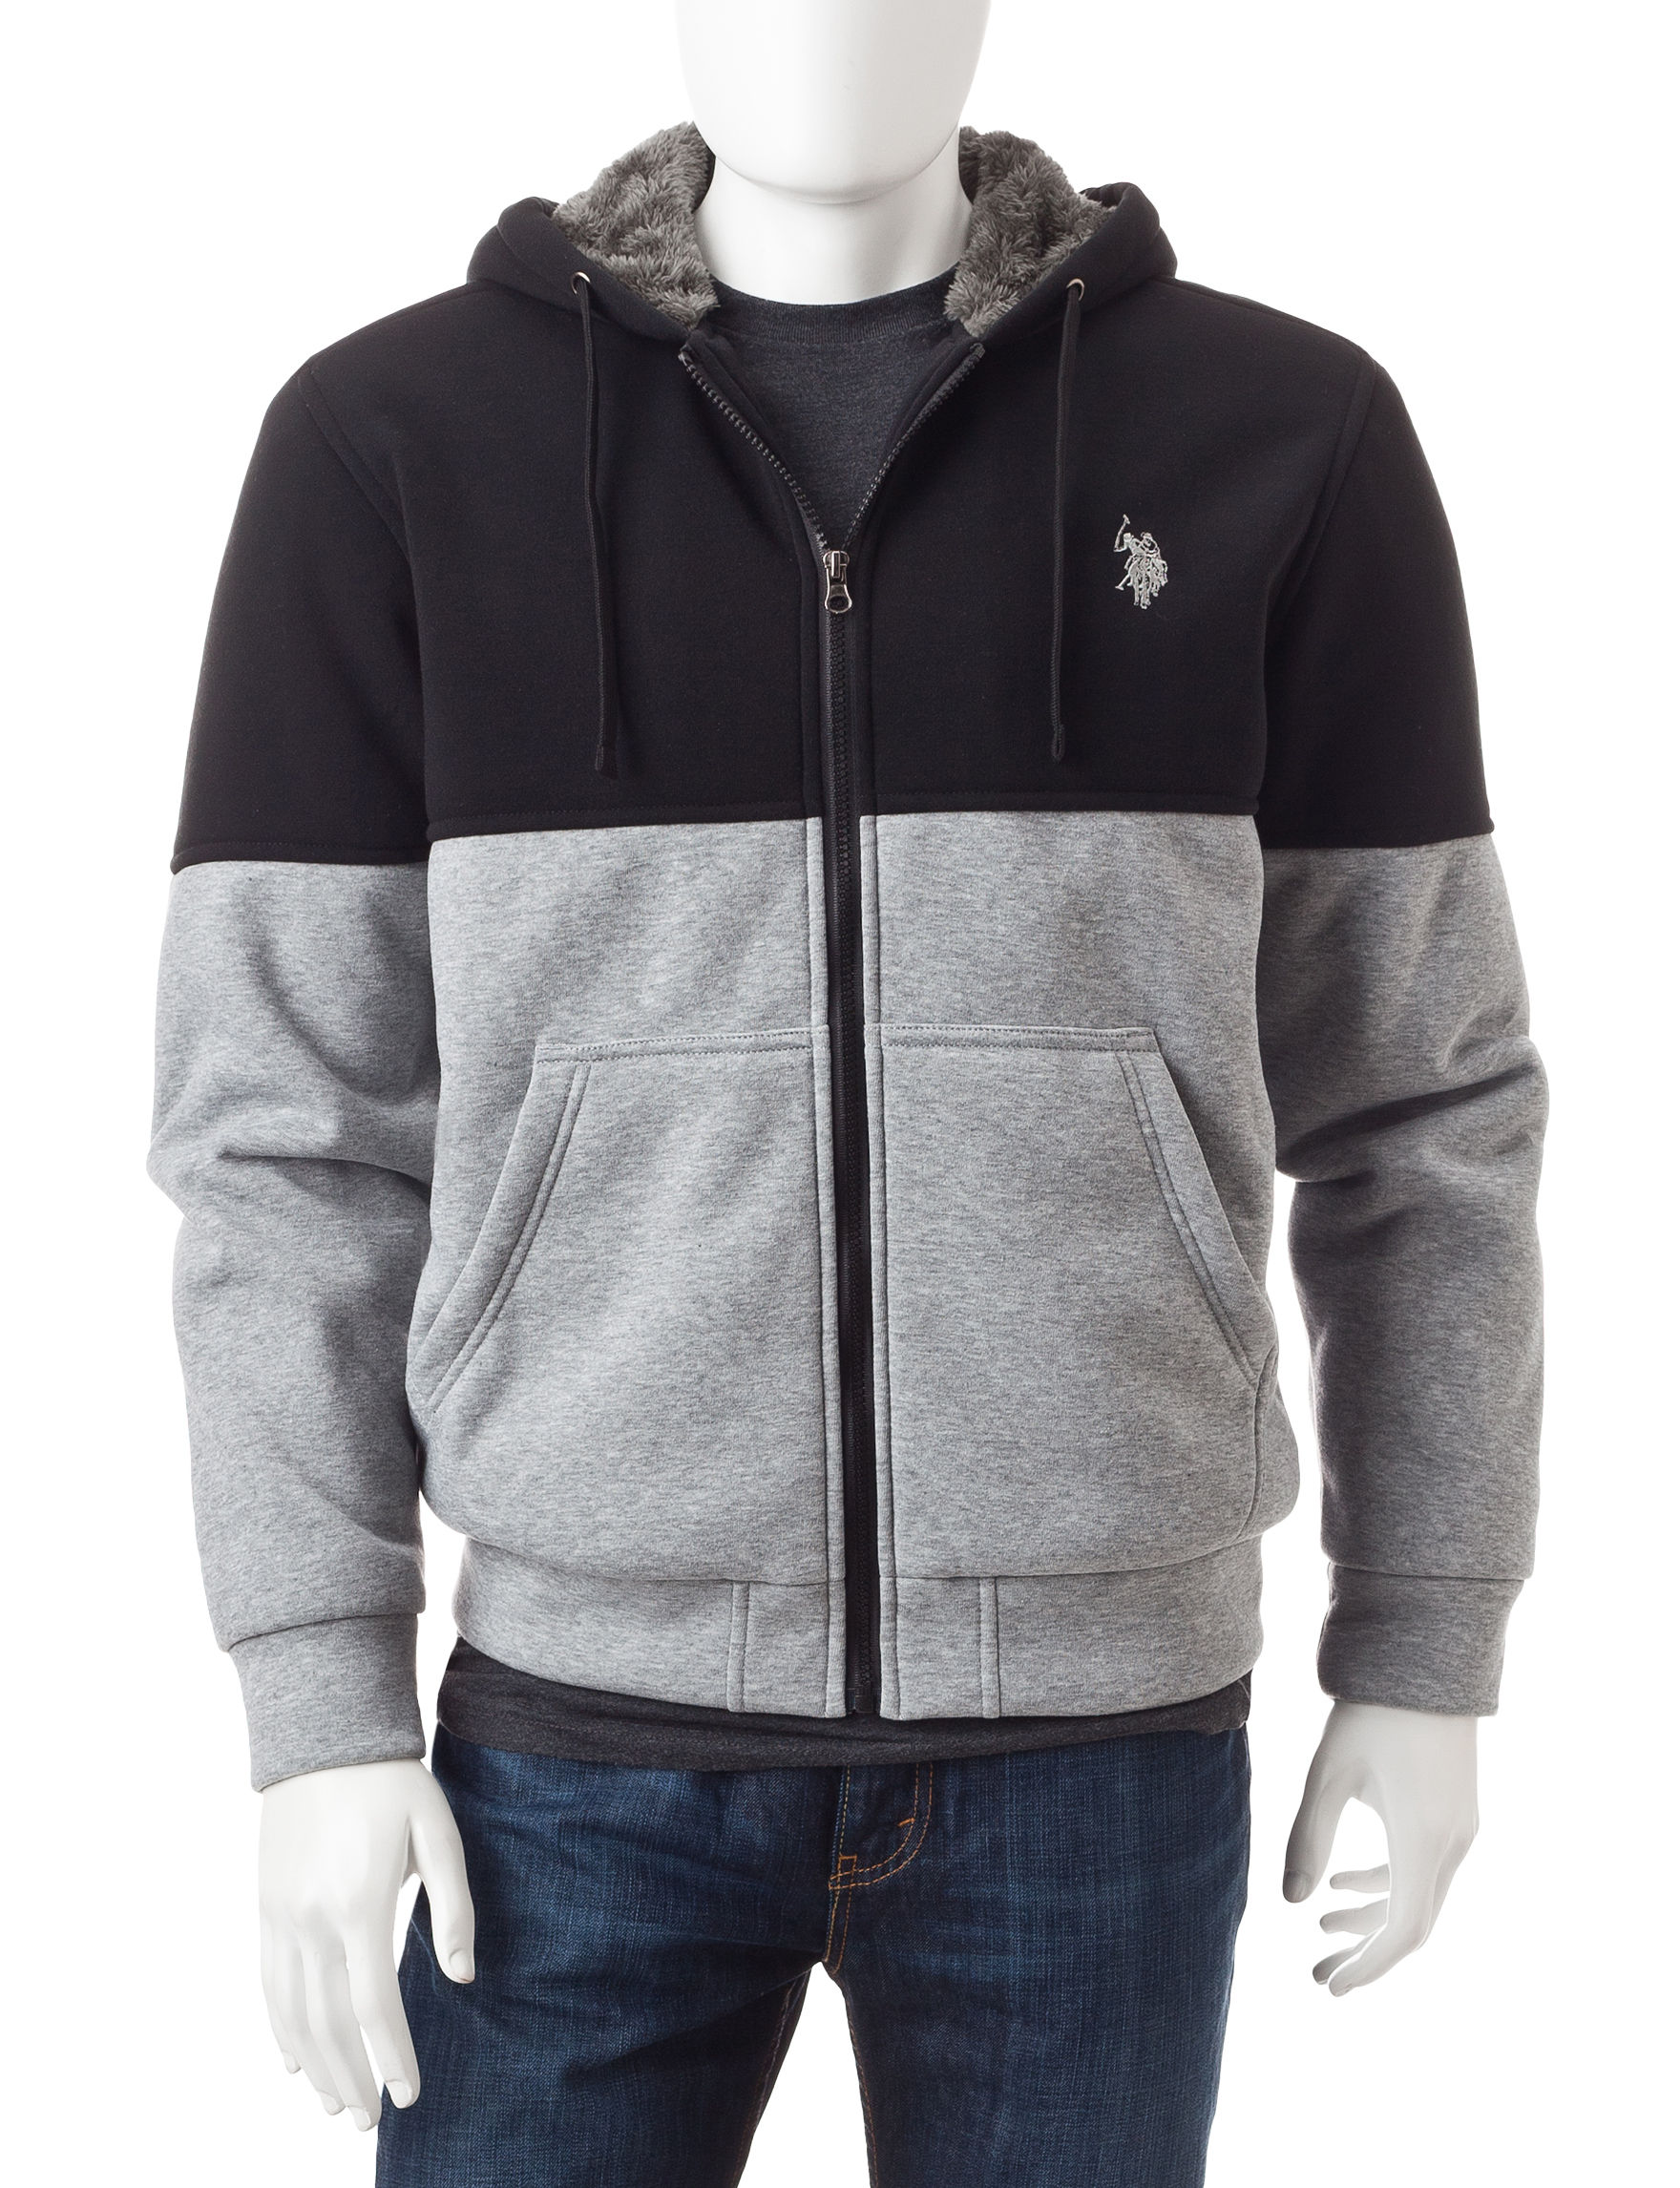 U.S. Polo Assn. Black Lightweight Jackets & Blazers